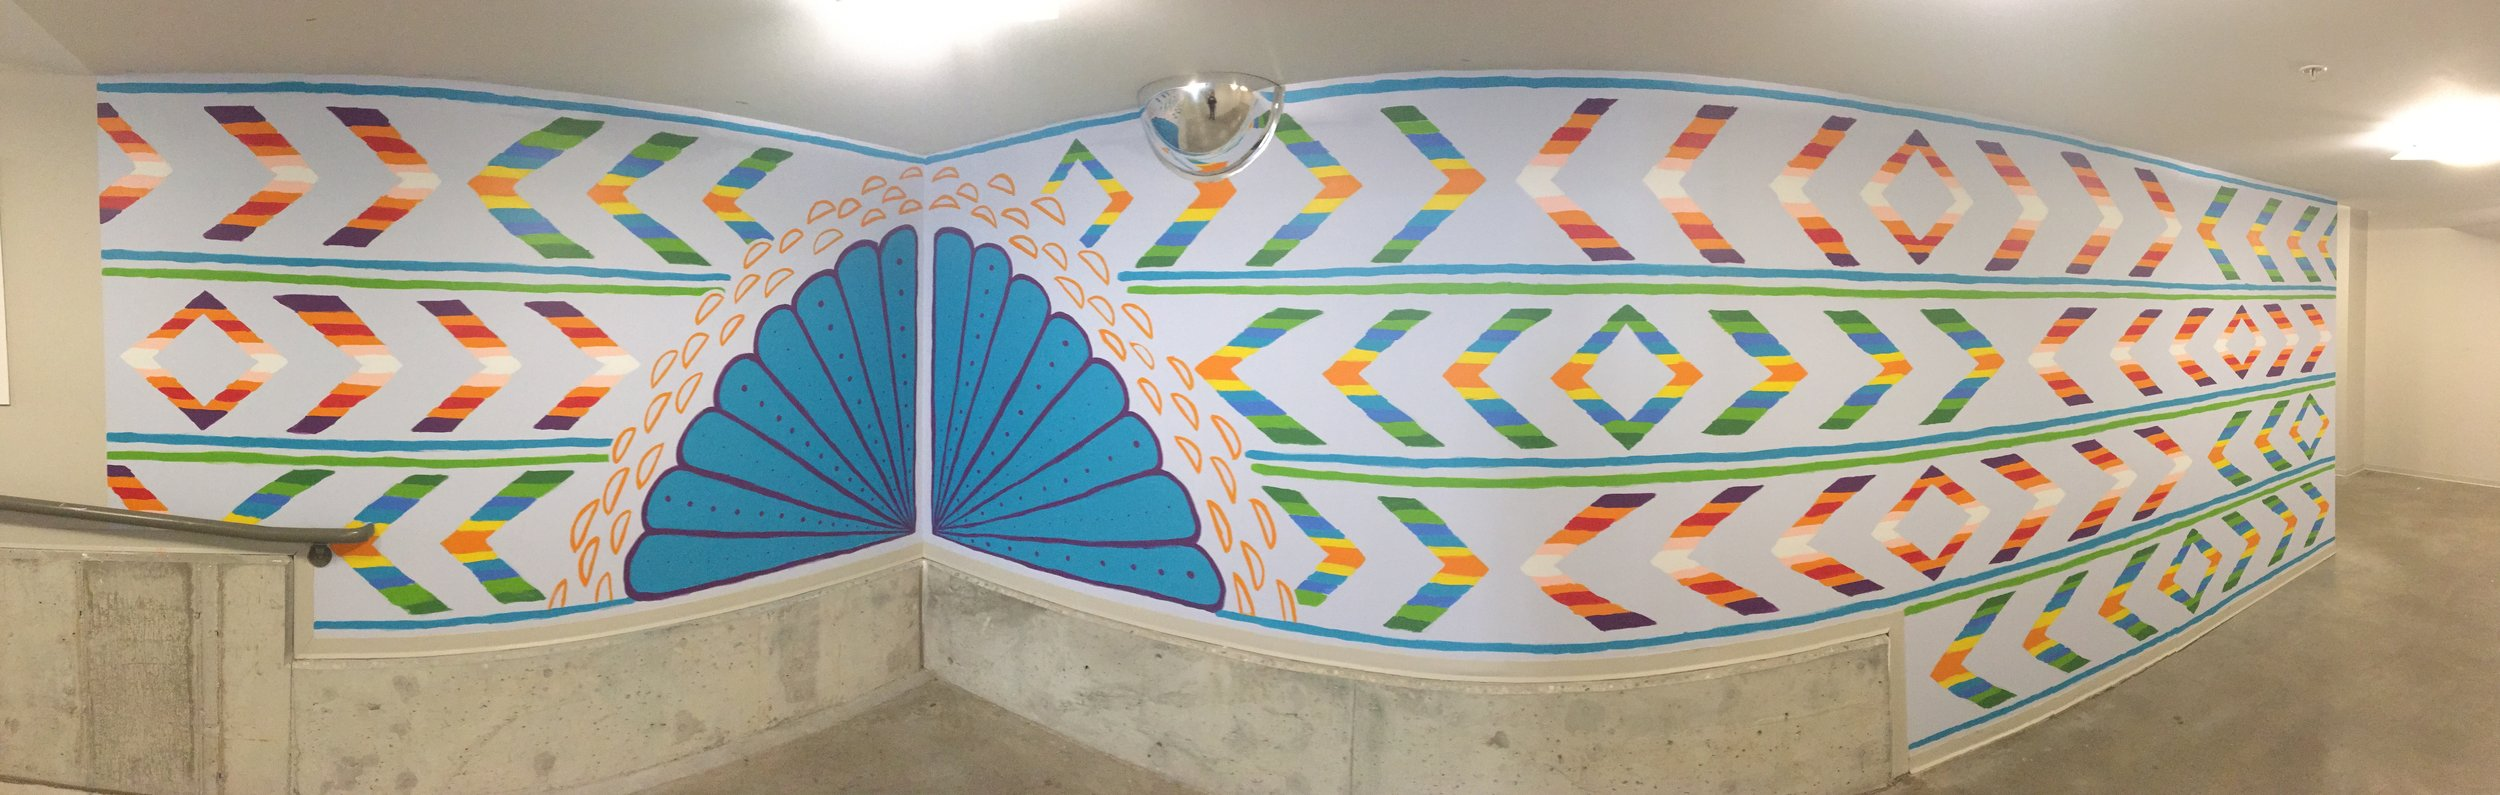 Textile inspired mural in Gallery parking ramp - panoramic view